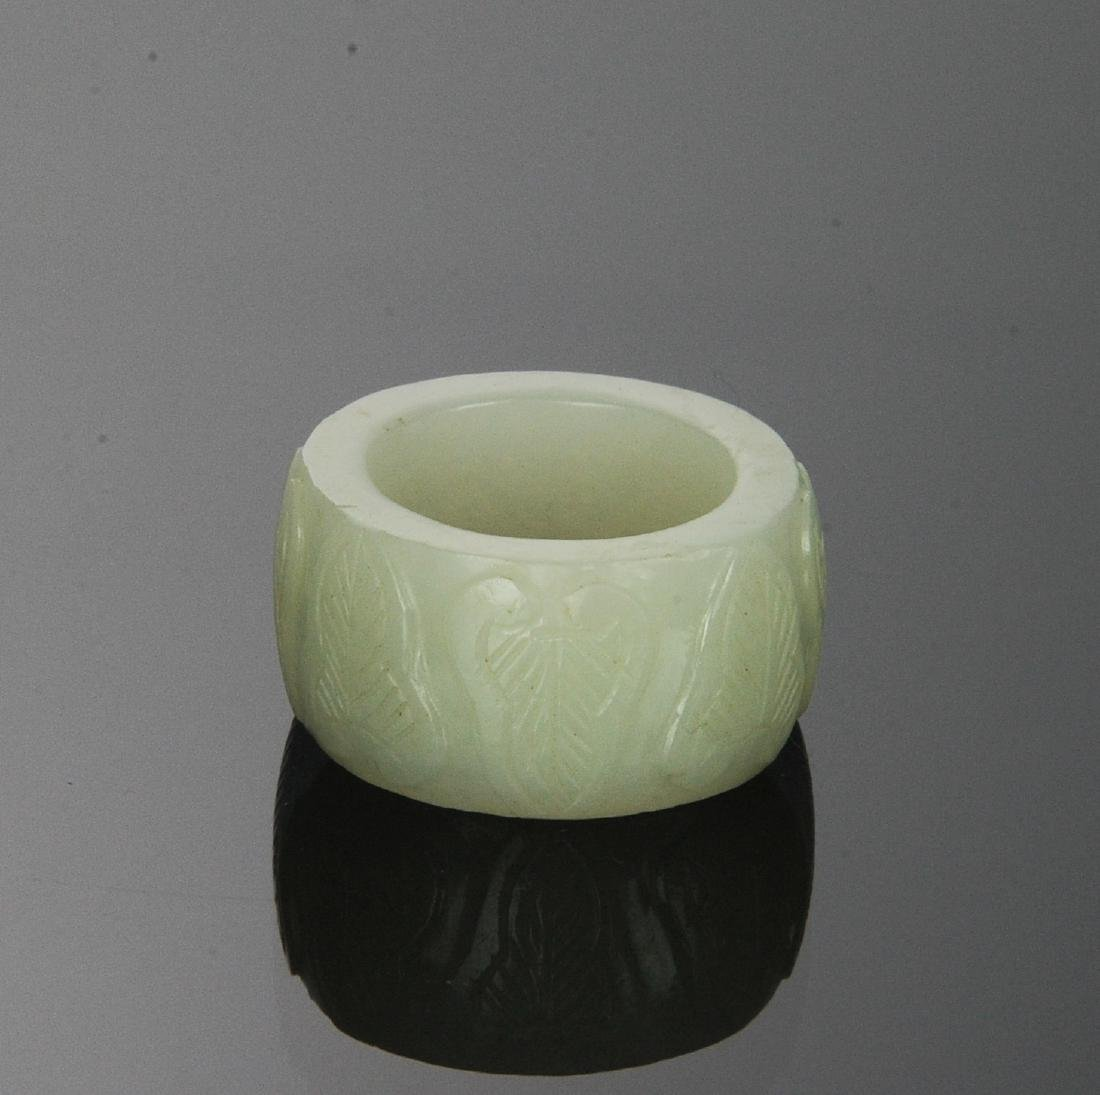 Carved White Jade Ring, 18th Century - 2